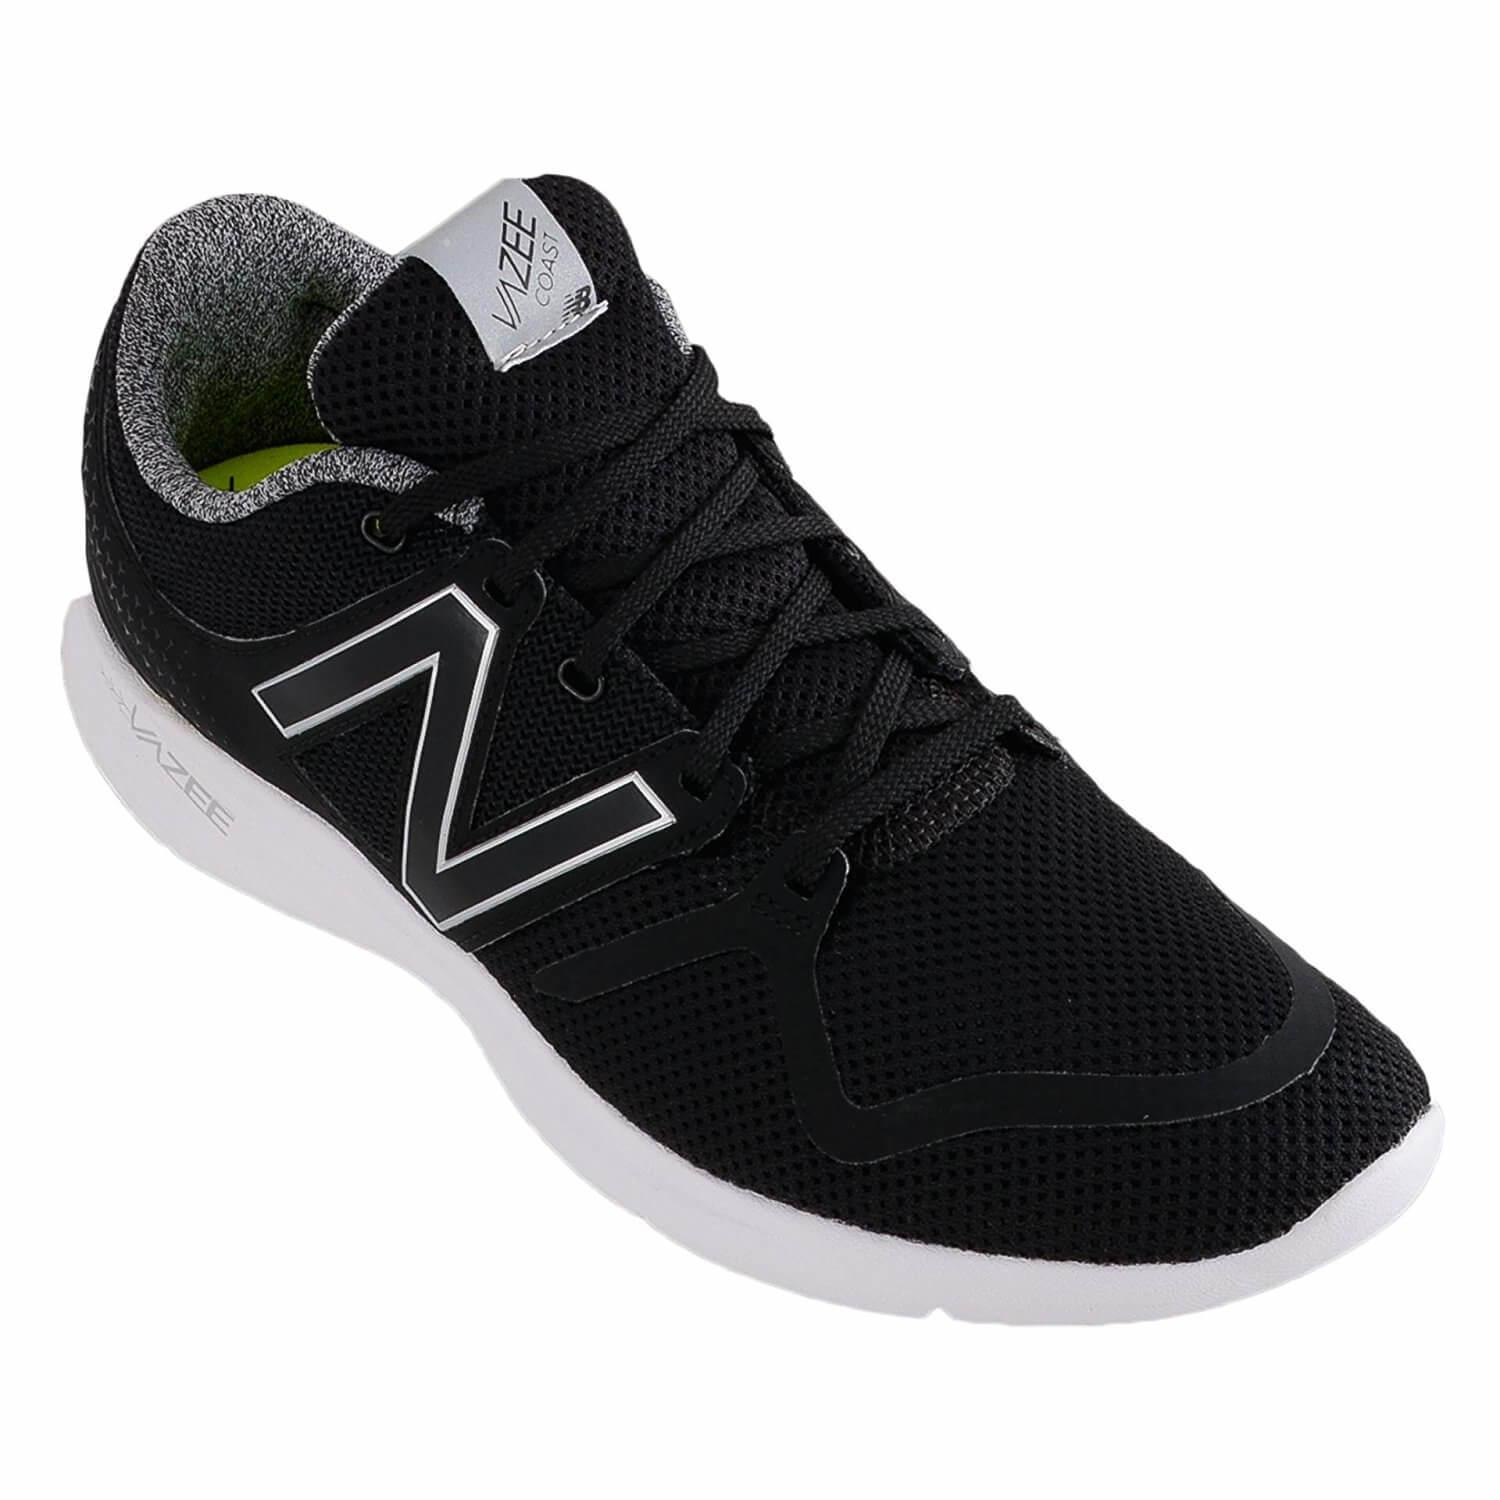 buy popular 3b548 1728b New Balance Vazee Coast Reviewed & Rated